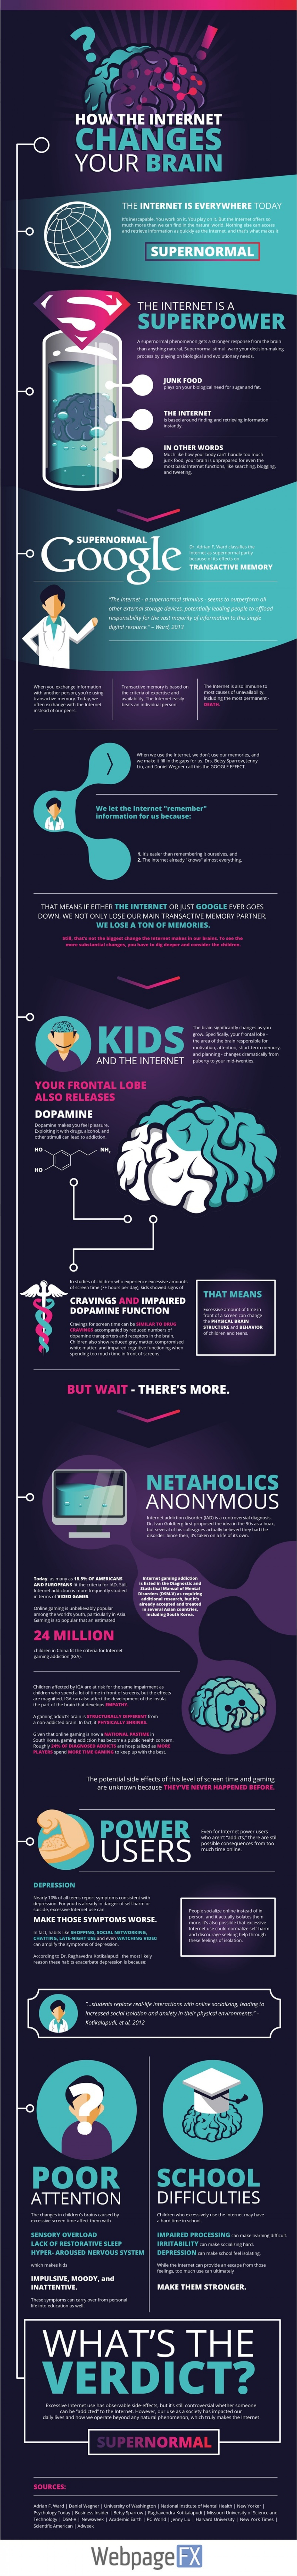 How the Internet Changes Your Brain Infographic